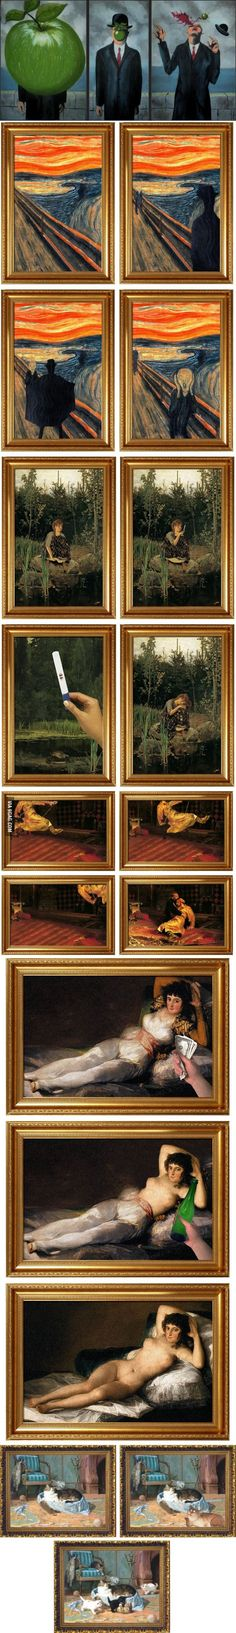 The stories behind some famous paintings..